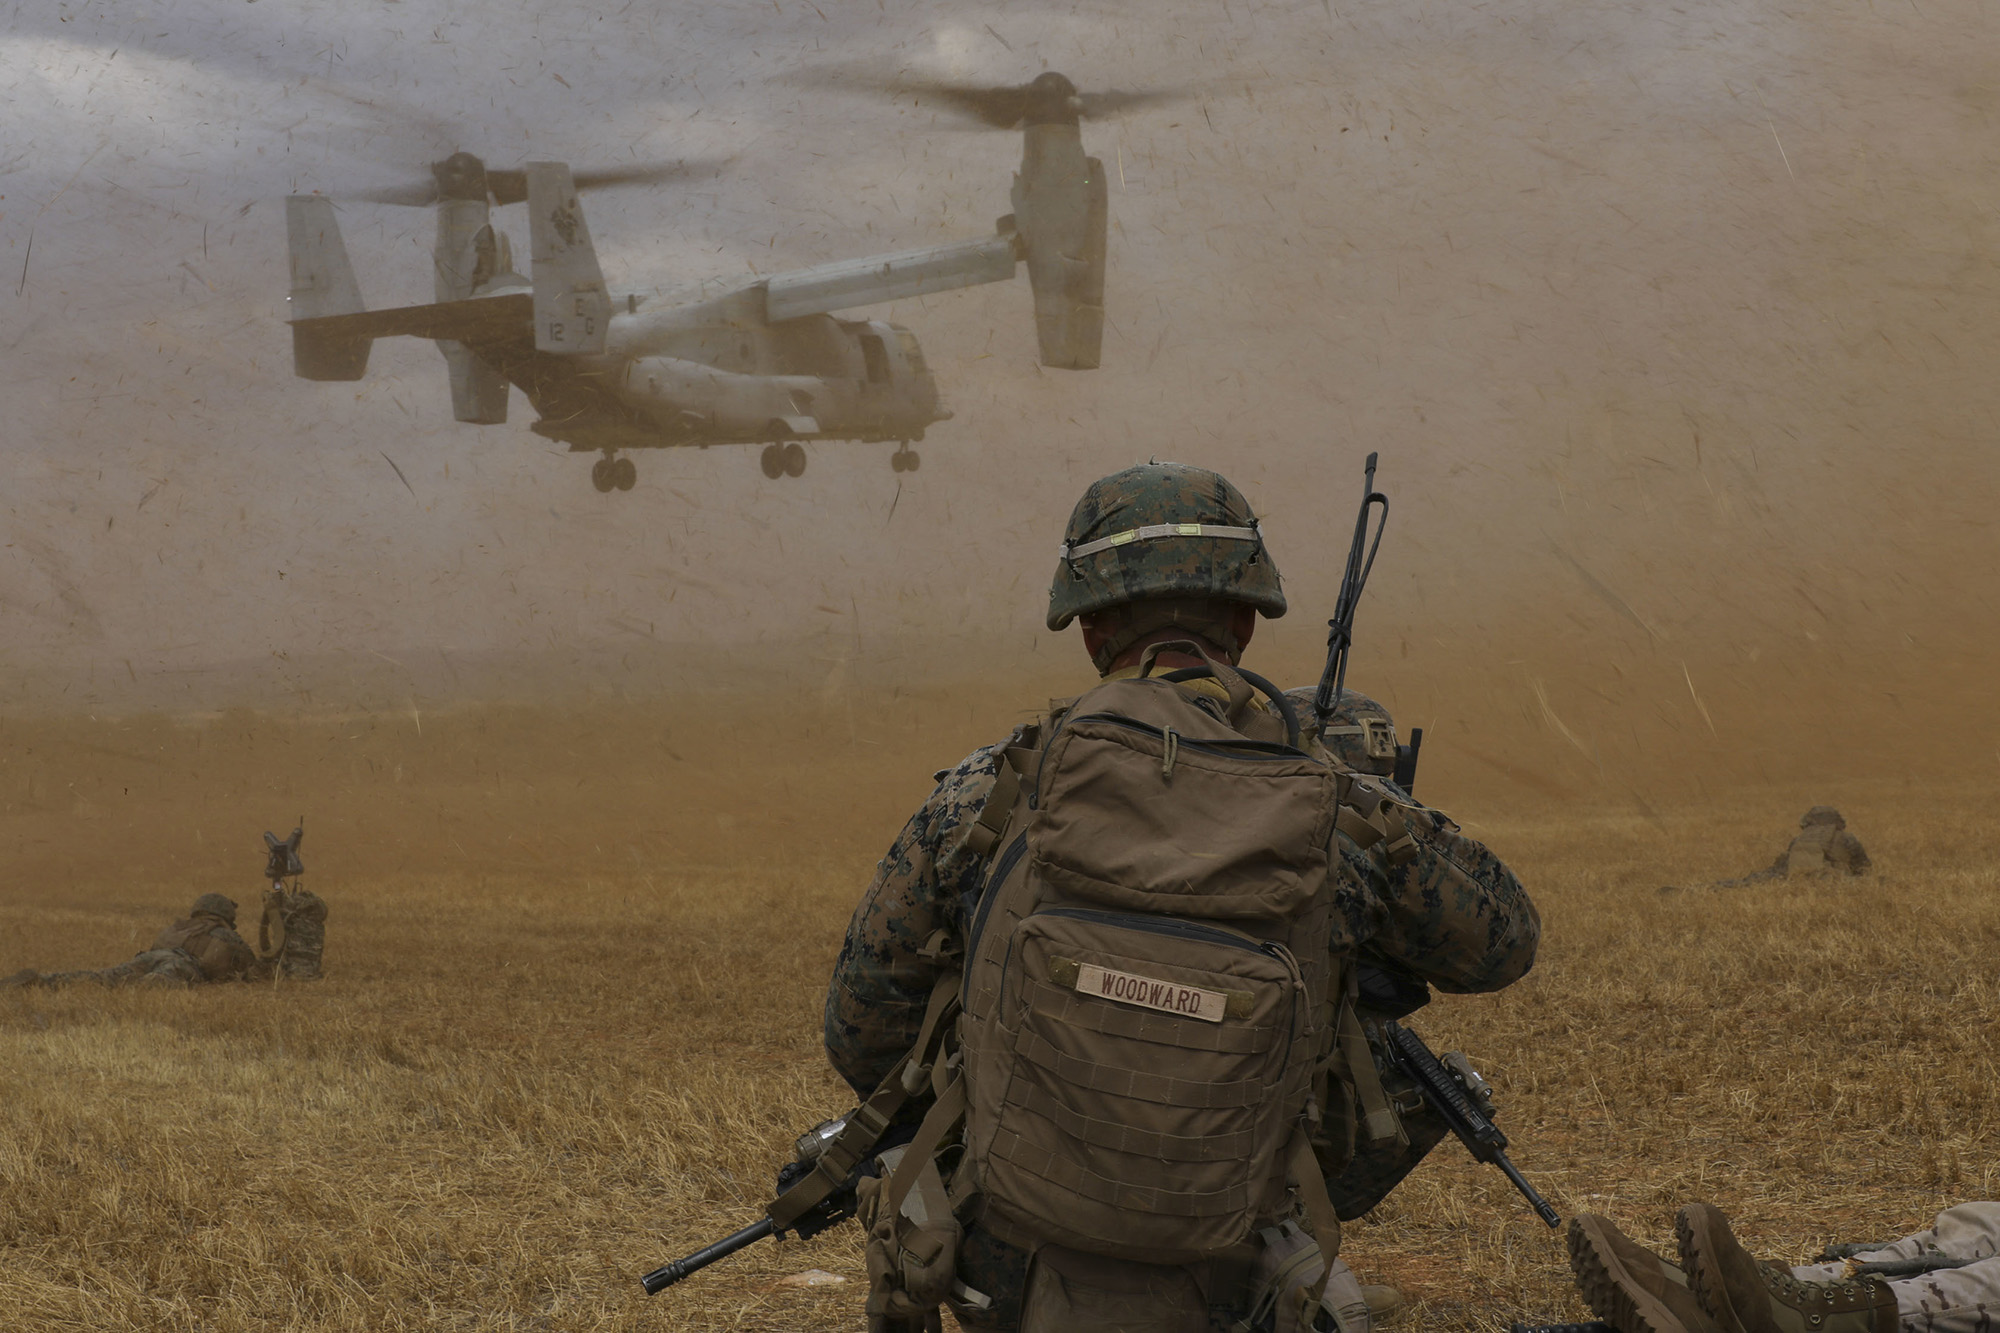 A U.S. Marine with Special Purpose Marine Air-Ground Task Force-Crisis Response-Africa 20.2, Marine Forces Europe and Africa, watches an MV-22B Osprey land at a landing zone during a tactical recovery of aircraft and personnel in Albacete, Spain, July 9, 2020. (Cpl. Antonio F. Garcia/Marine Corps)